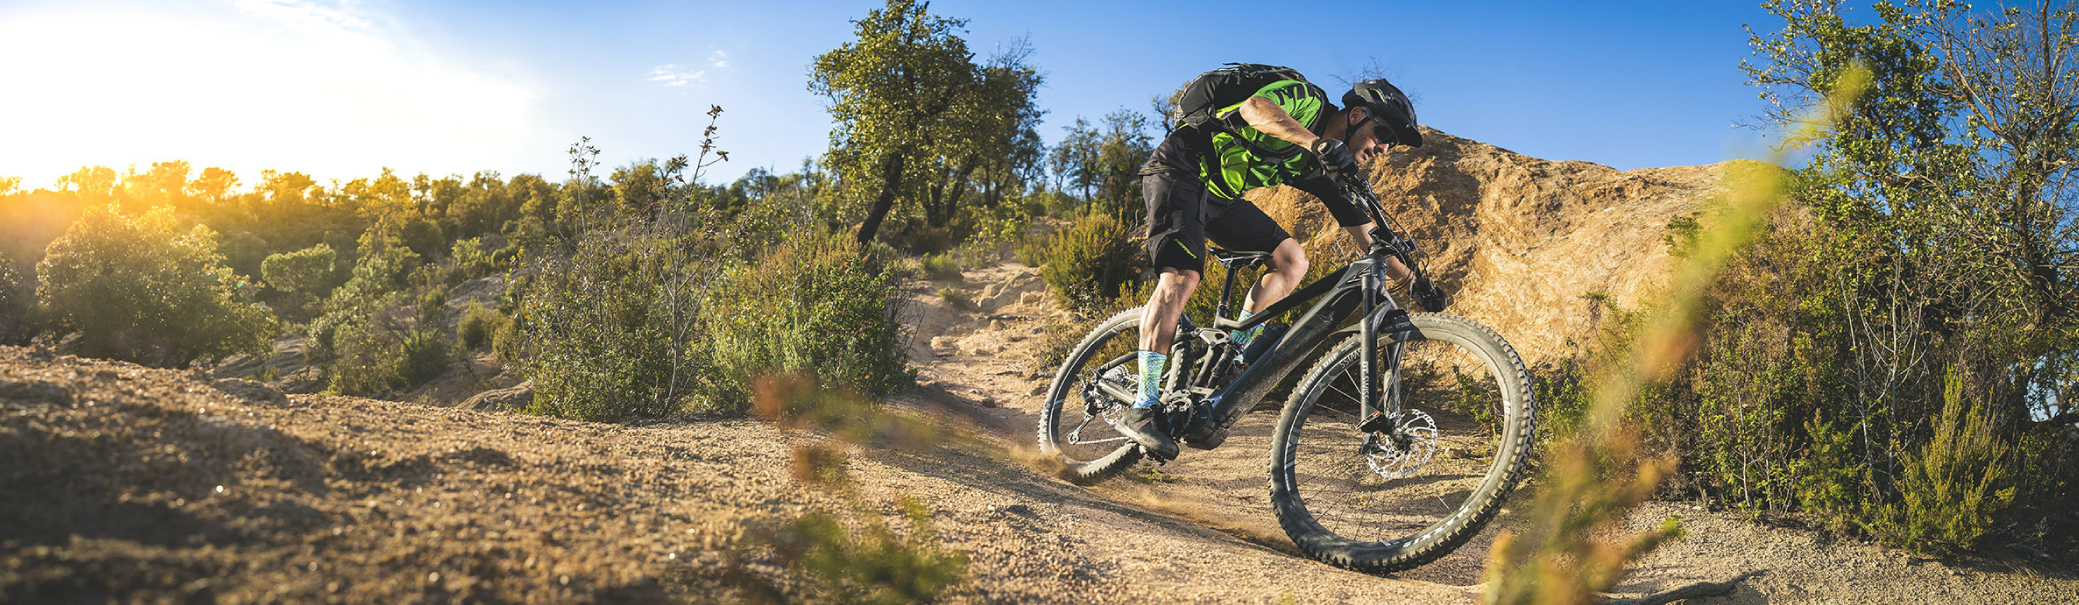 Mountainbiker going downhill on his Merida's bike